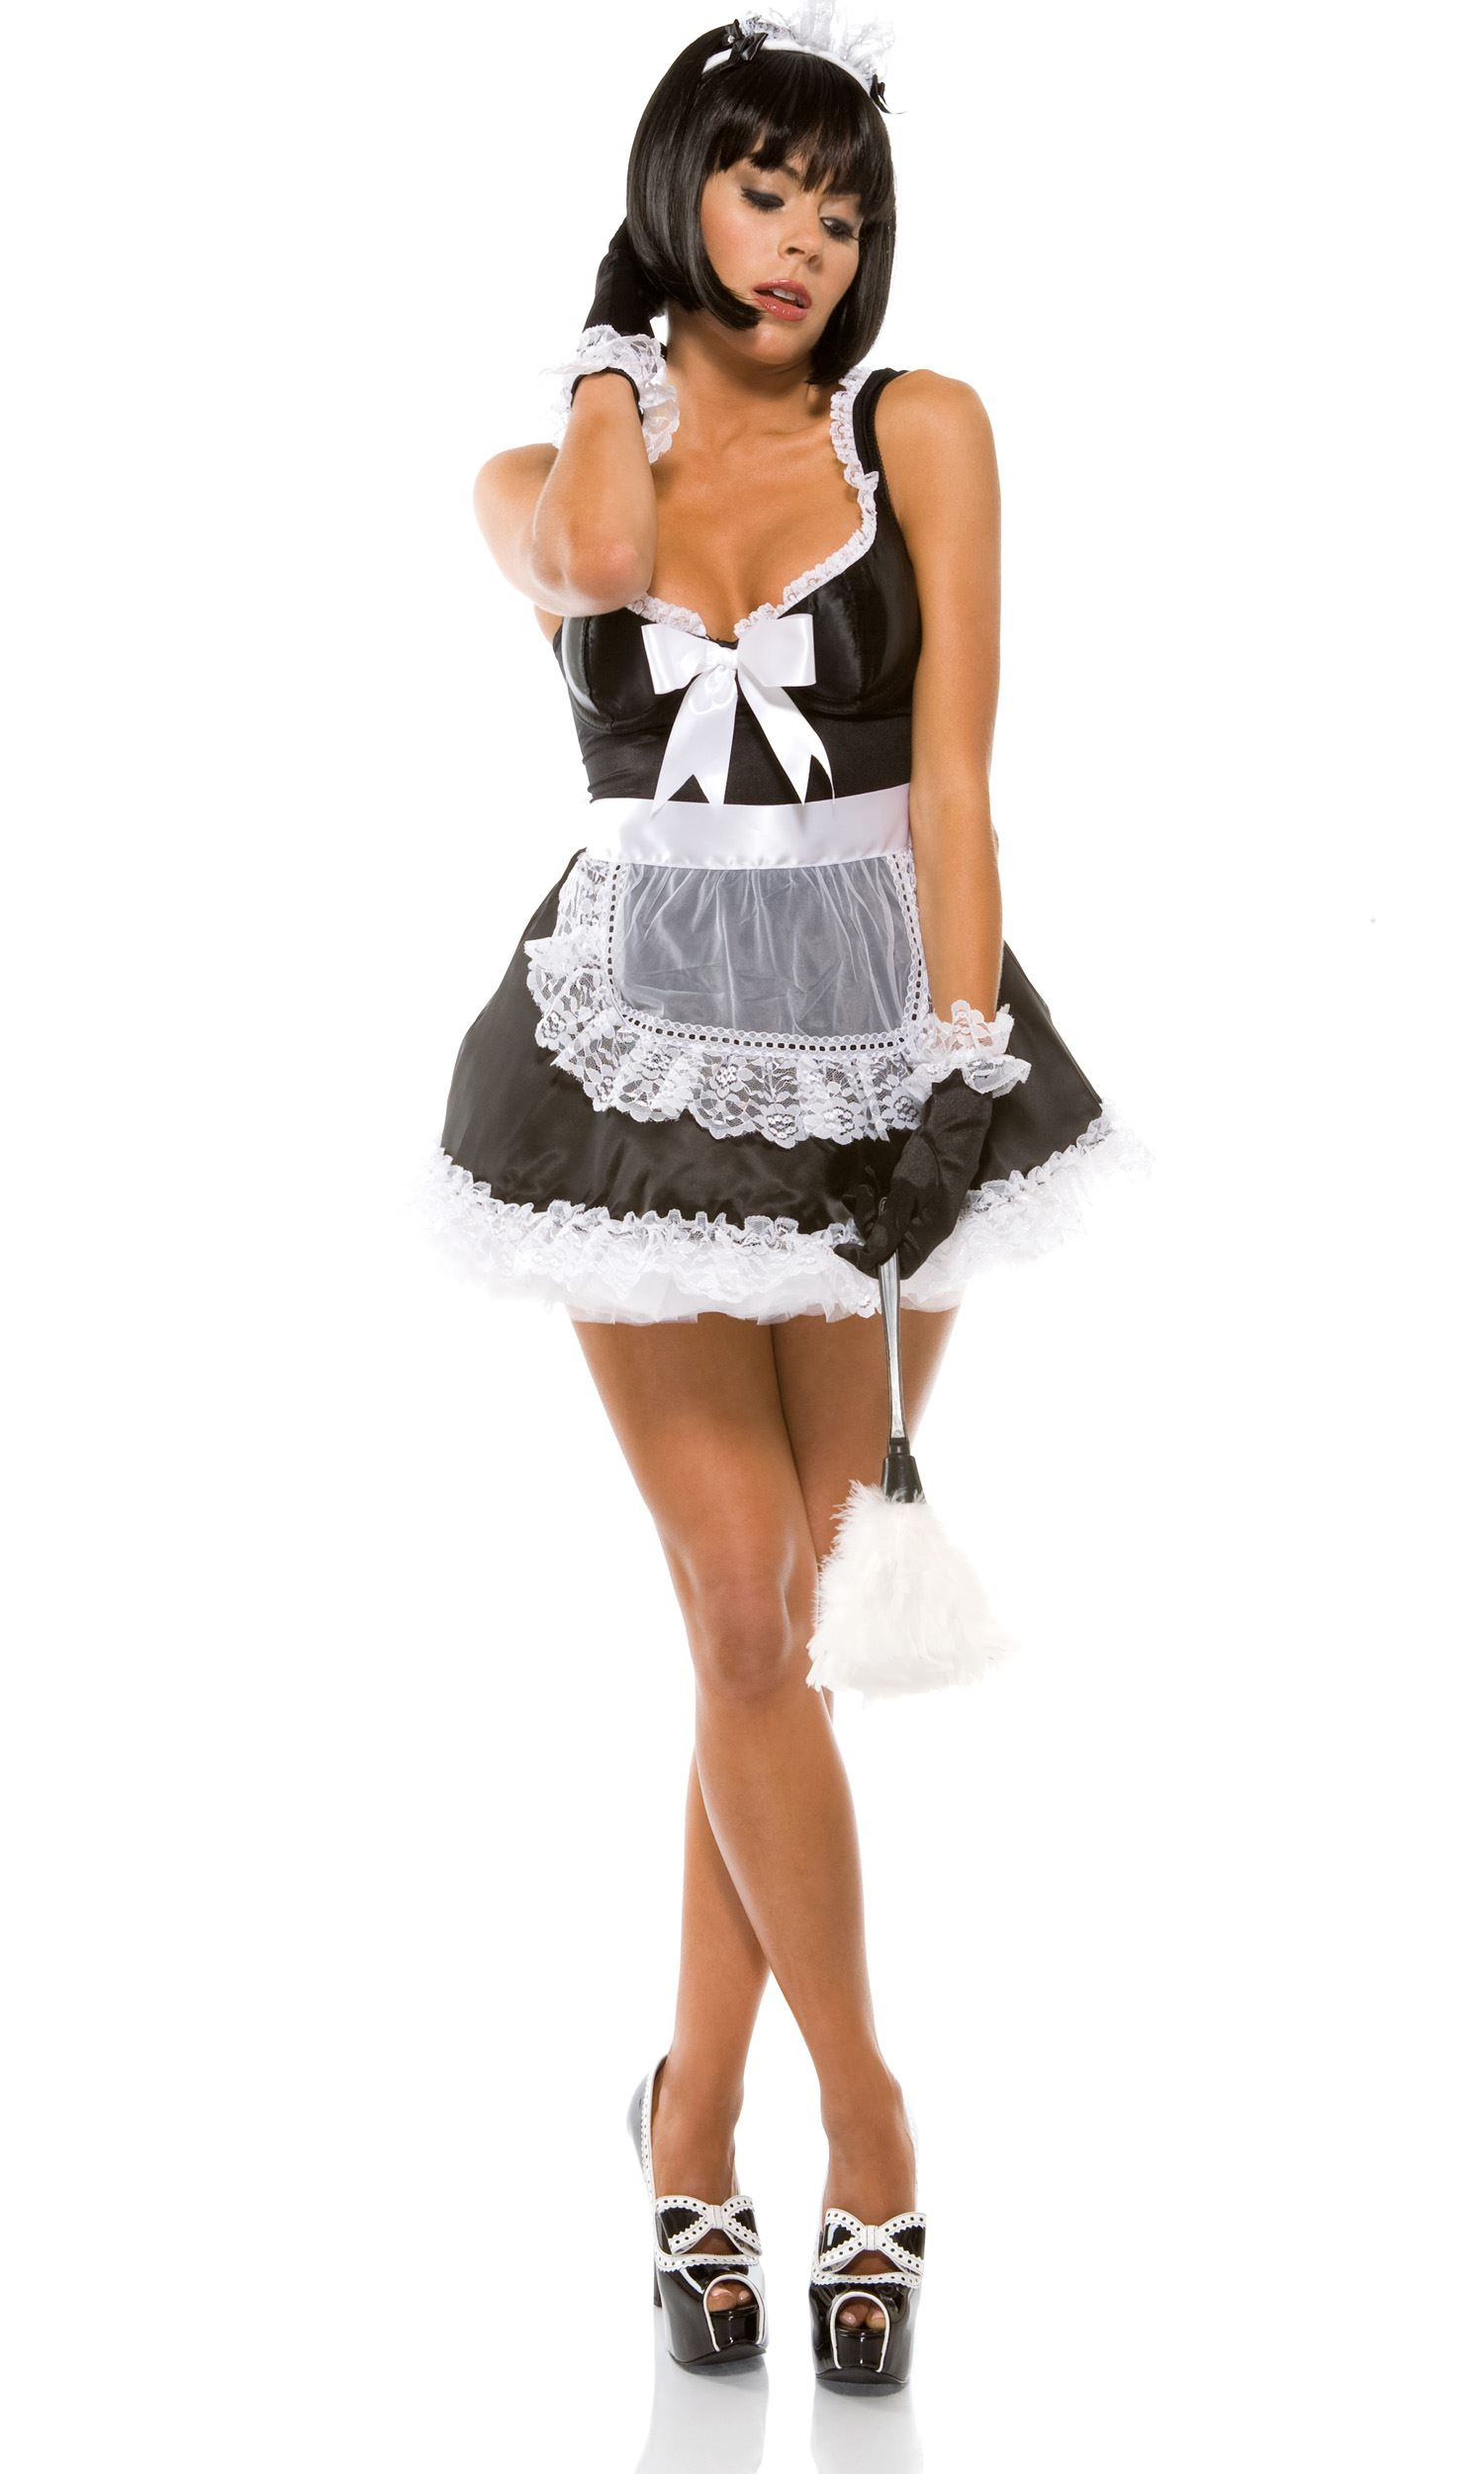 Awesome Adult Domesticated Delight French Maid Costume | $54.99 | The Costume Land